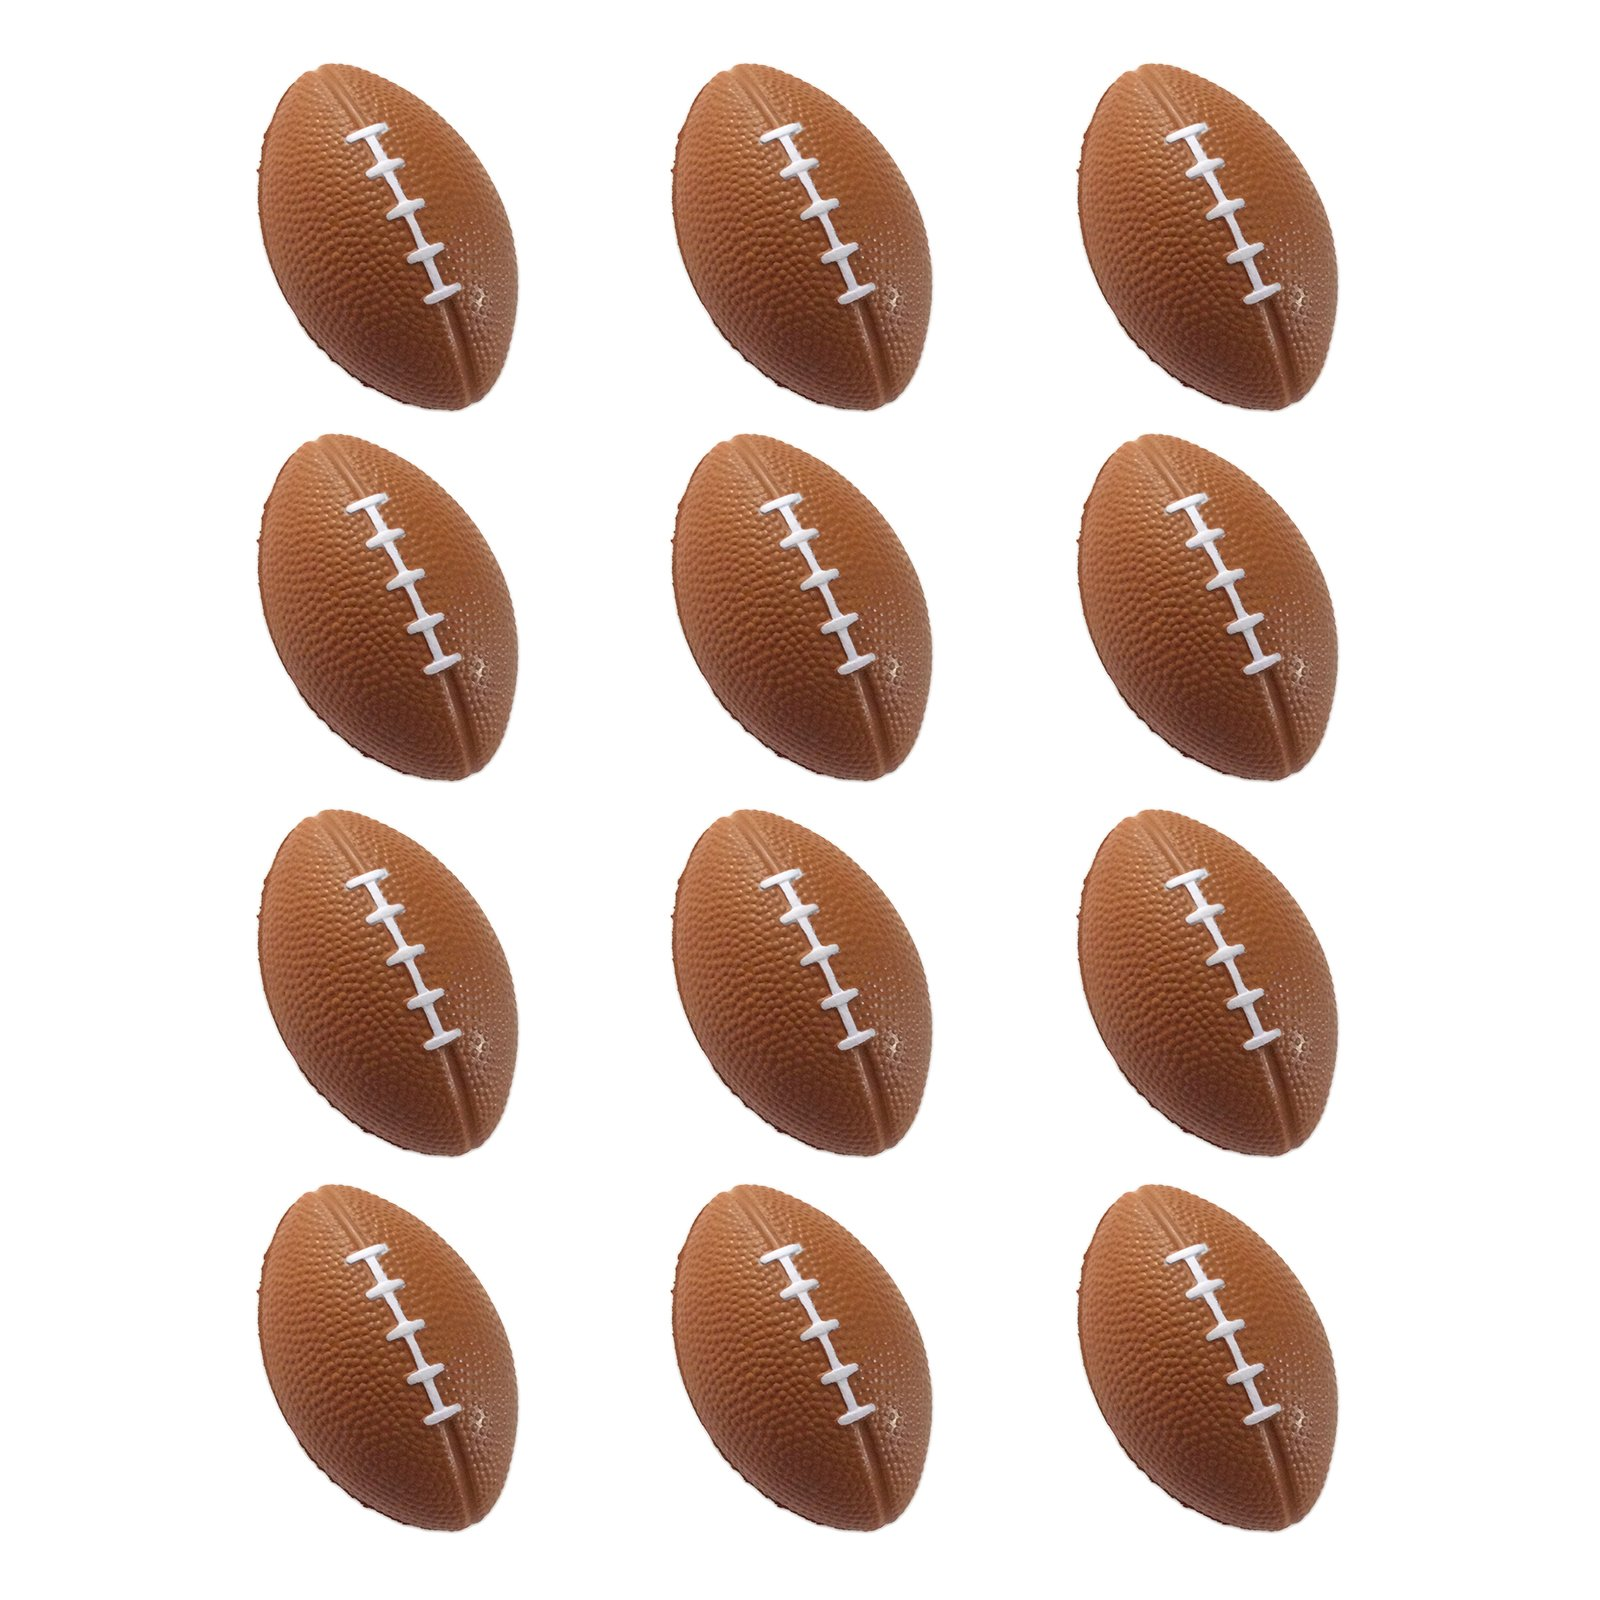 Mini Sports Balls for Kids Party Favor Toy, Soccer Ball, Basketball, Football, Baseball (12 Pack) Squeeze Foam for Stress, Anxiety Relief, Relaxation.